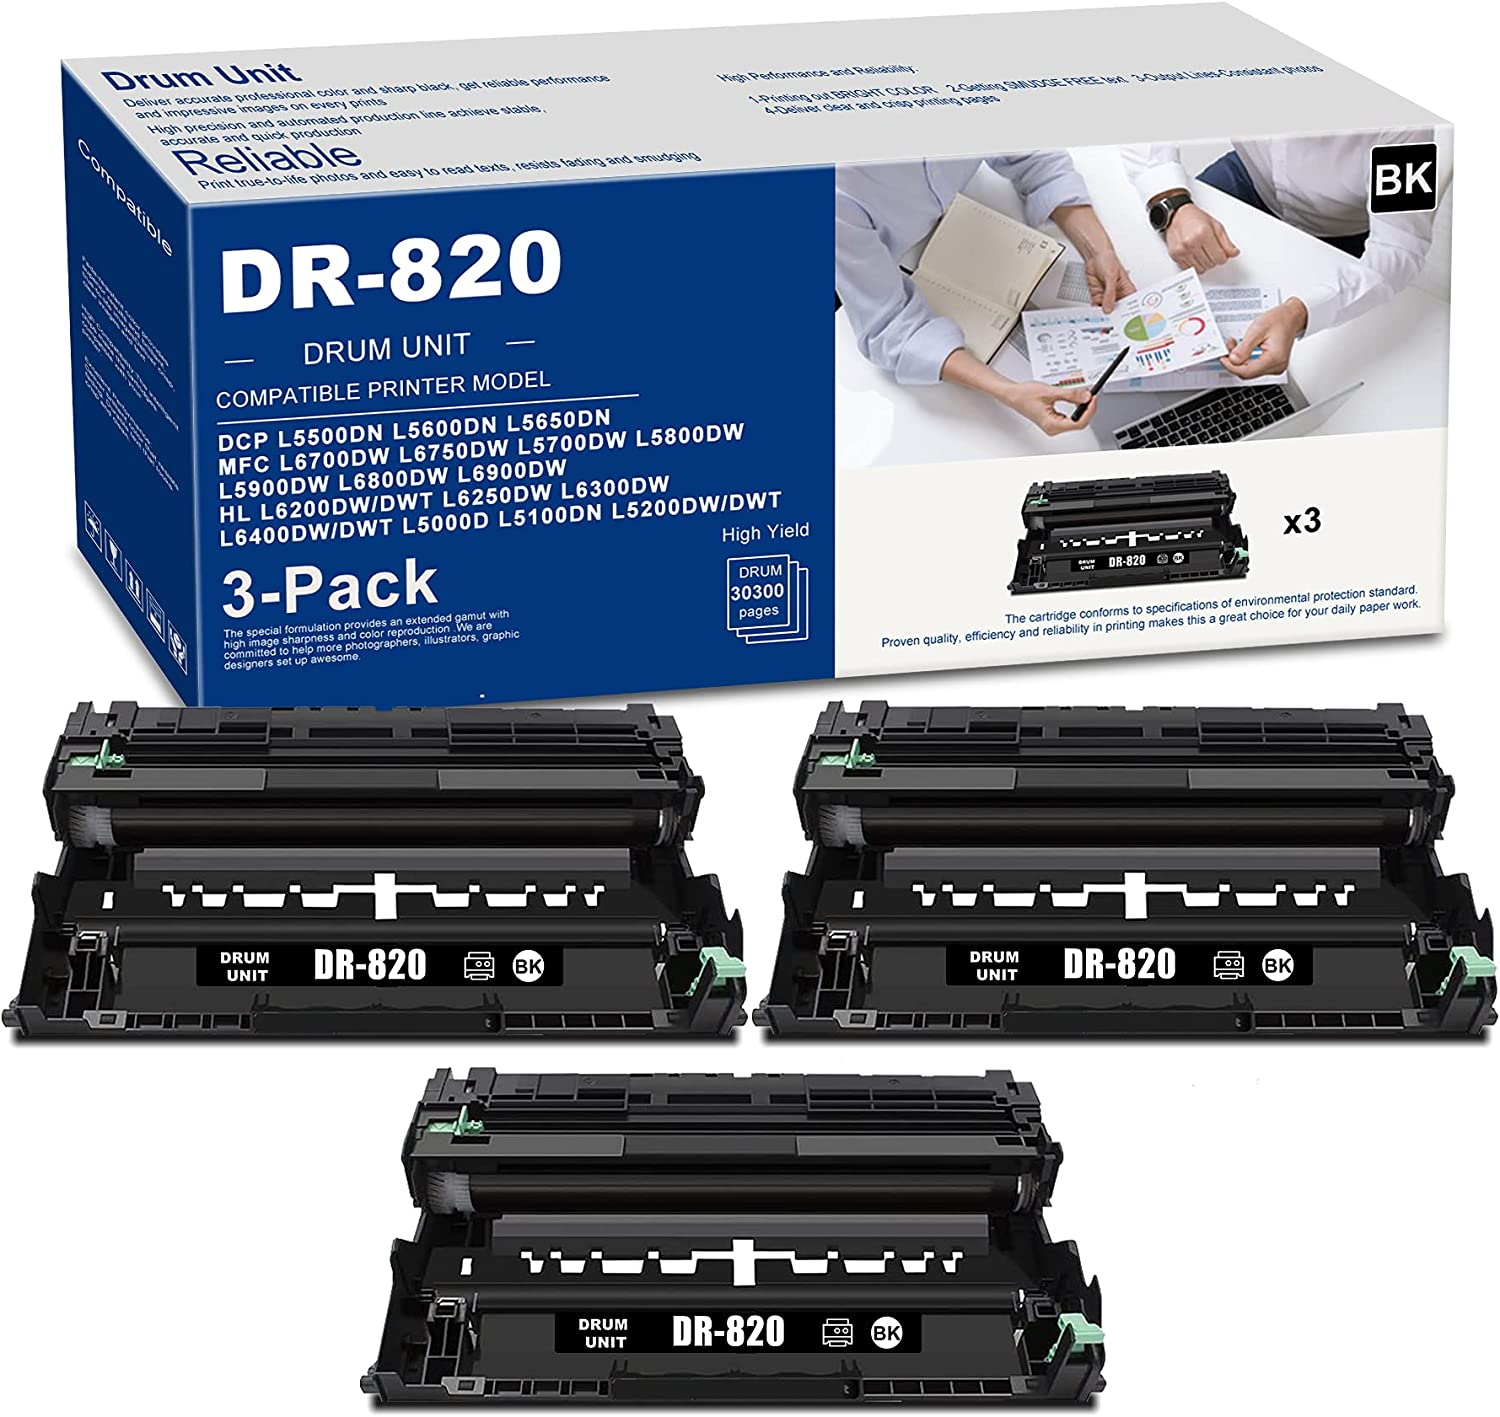 (3 PK Black) DR820 DR-820 Drum Unit High Yield Compatible Replacement for Brother DCP L5500DN L5600DN L5650DN MFC L6700DW L6750DW L5700DW L5800DW L5900DW L6800DW L6900DW Printer